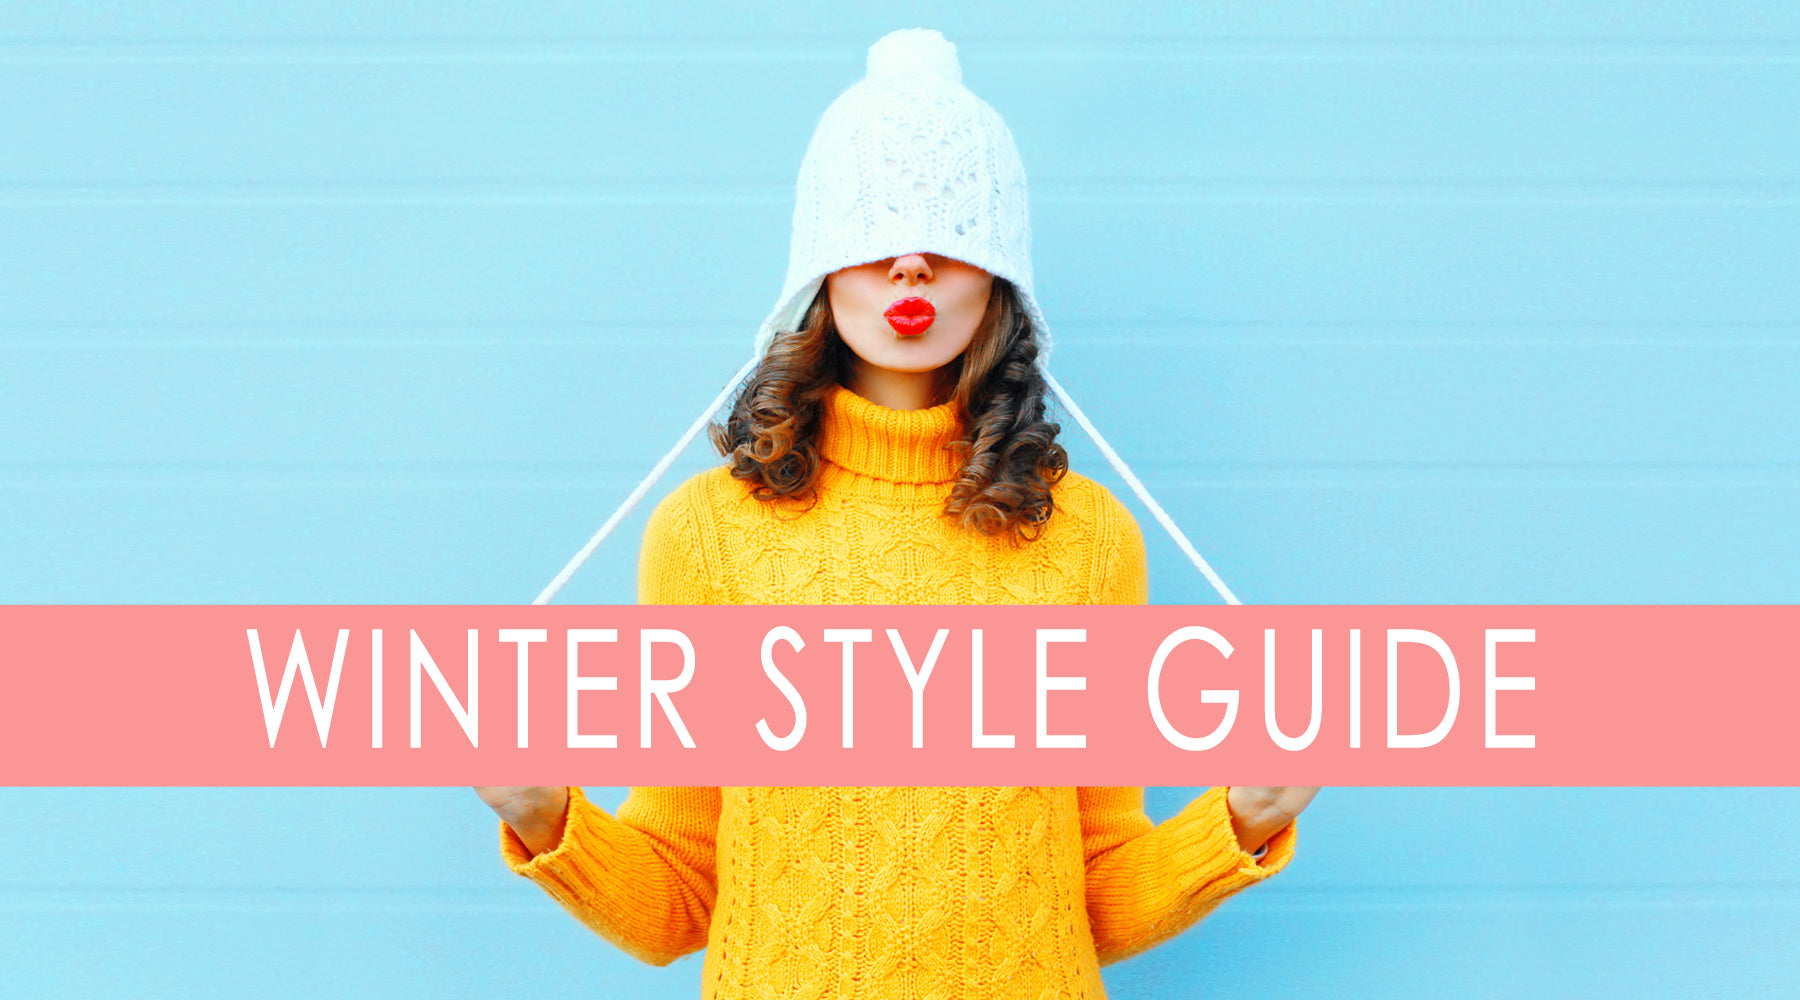 Winter style guide: What to wear with short hair